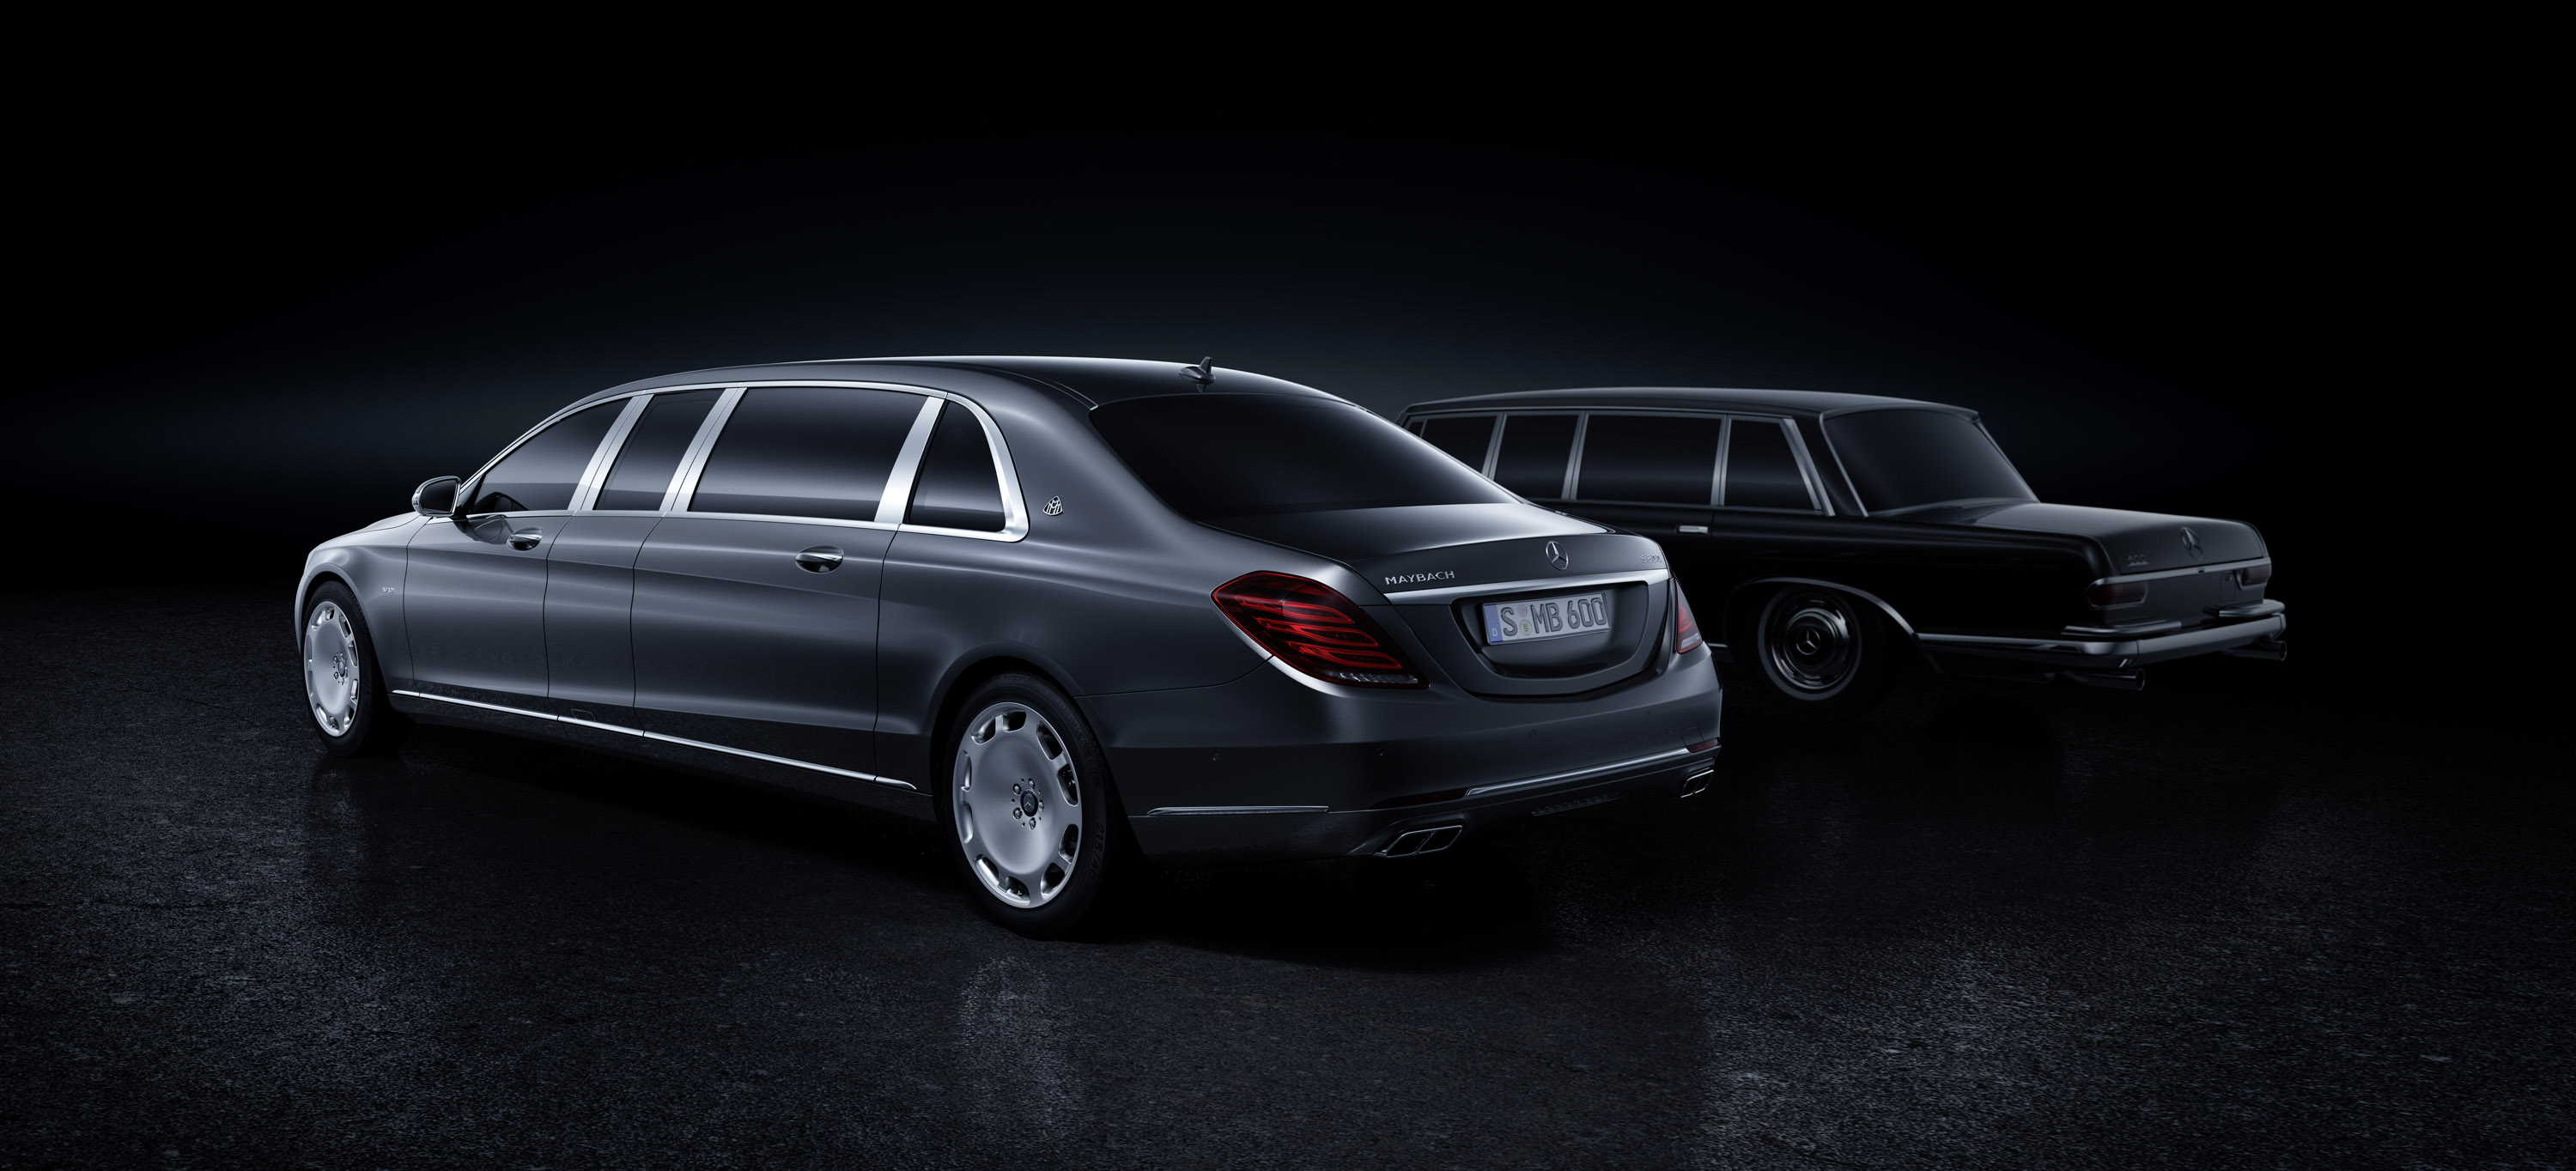 2016 mercedes benz s600 pullman maybach hd pictures for Mercedes benz 600 price